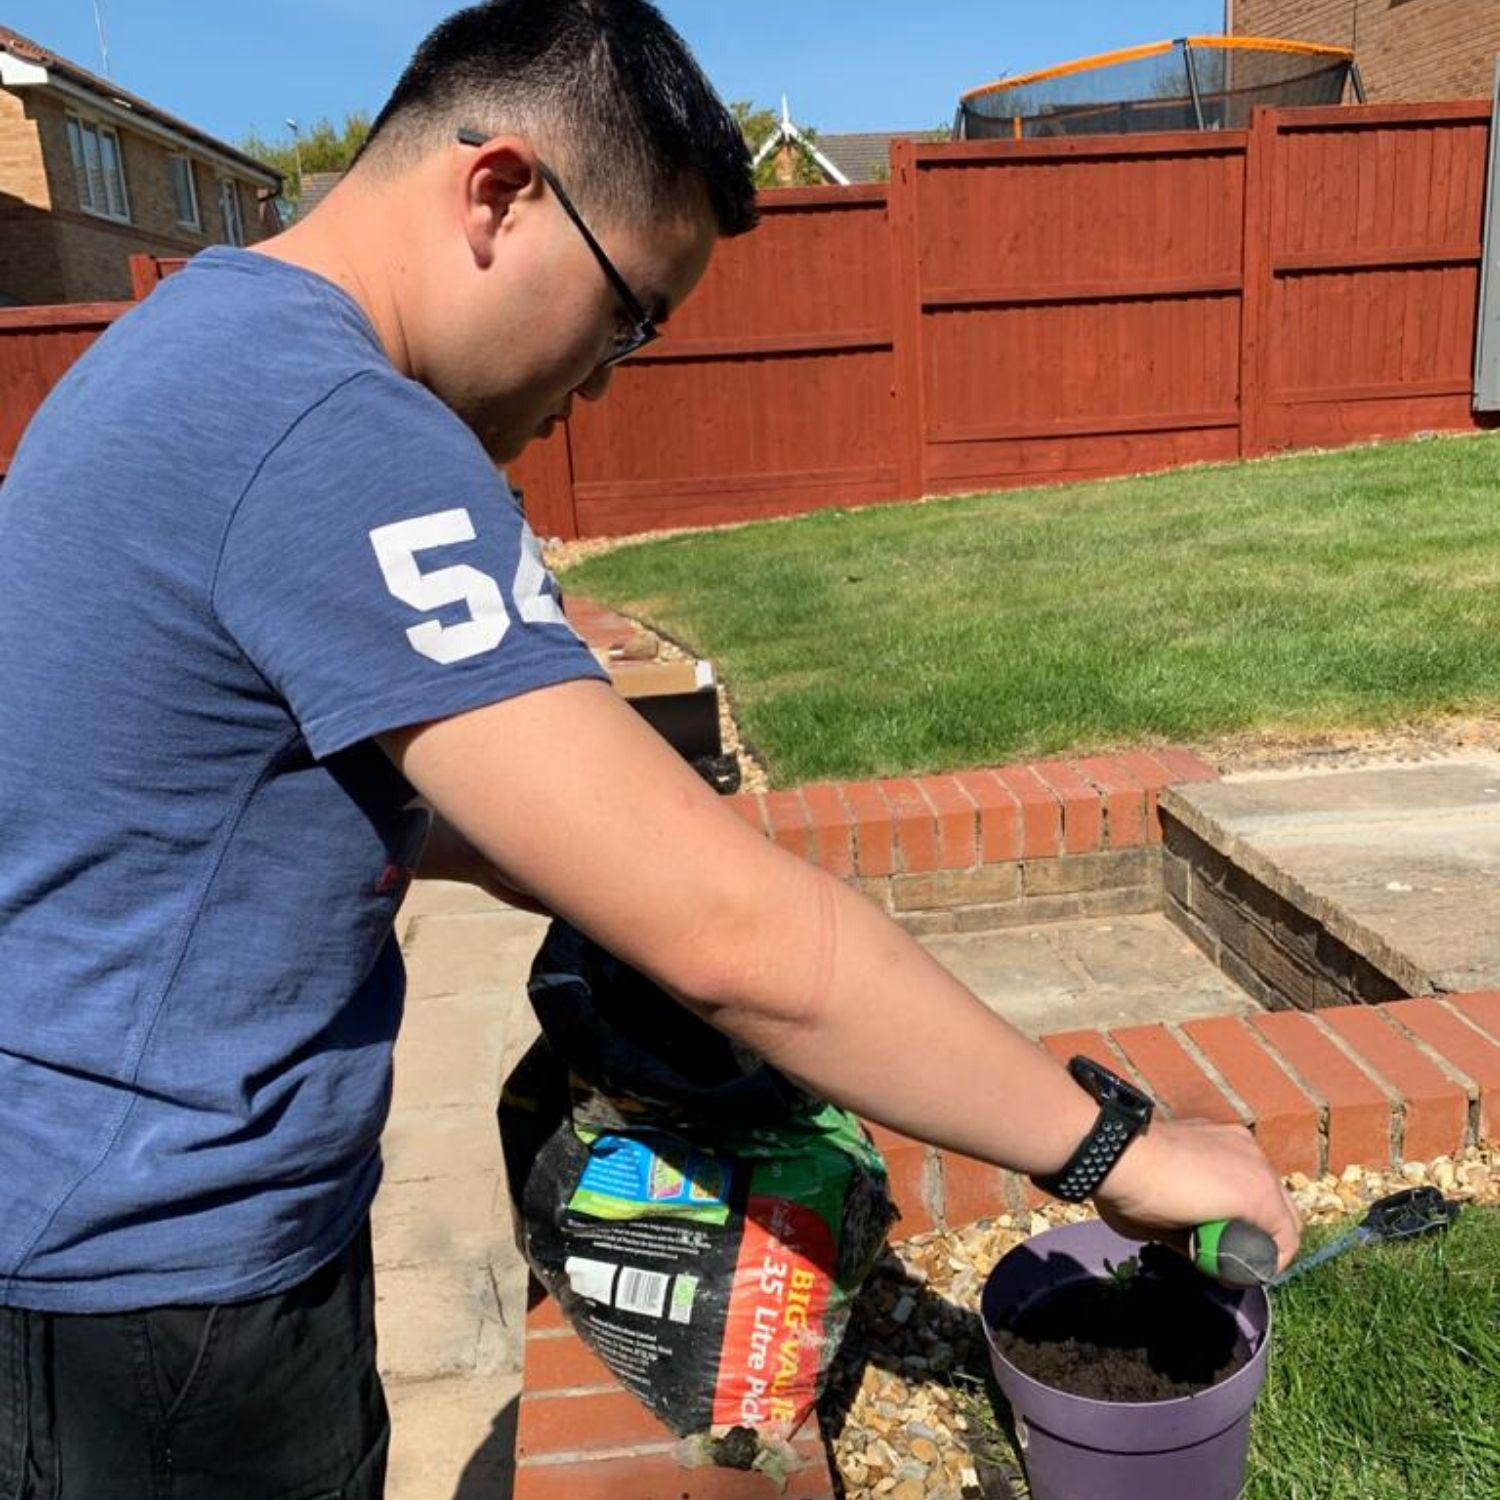 Prep 4 Life Student Calvin Planting a Sunflower in His Garden